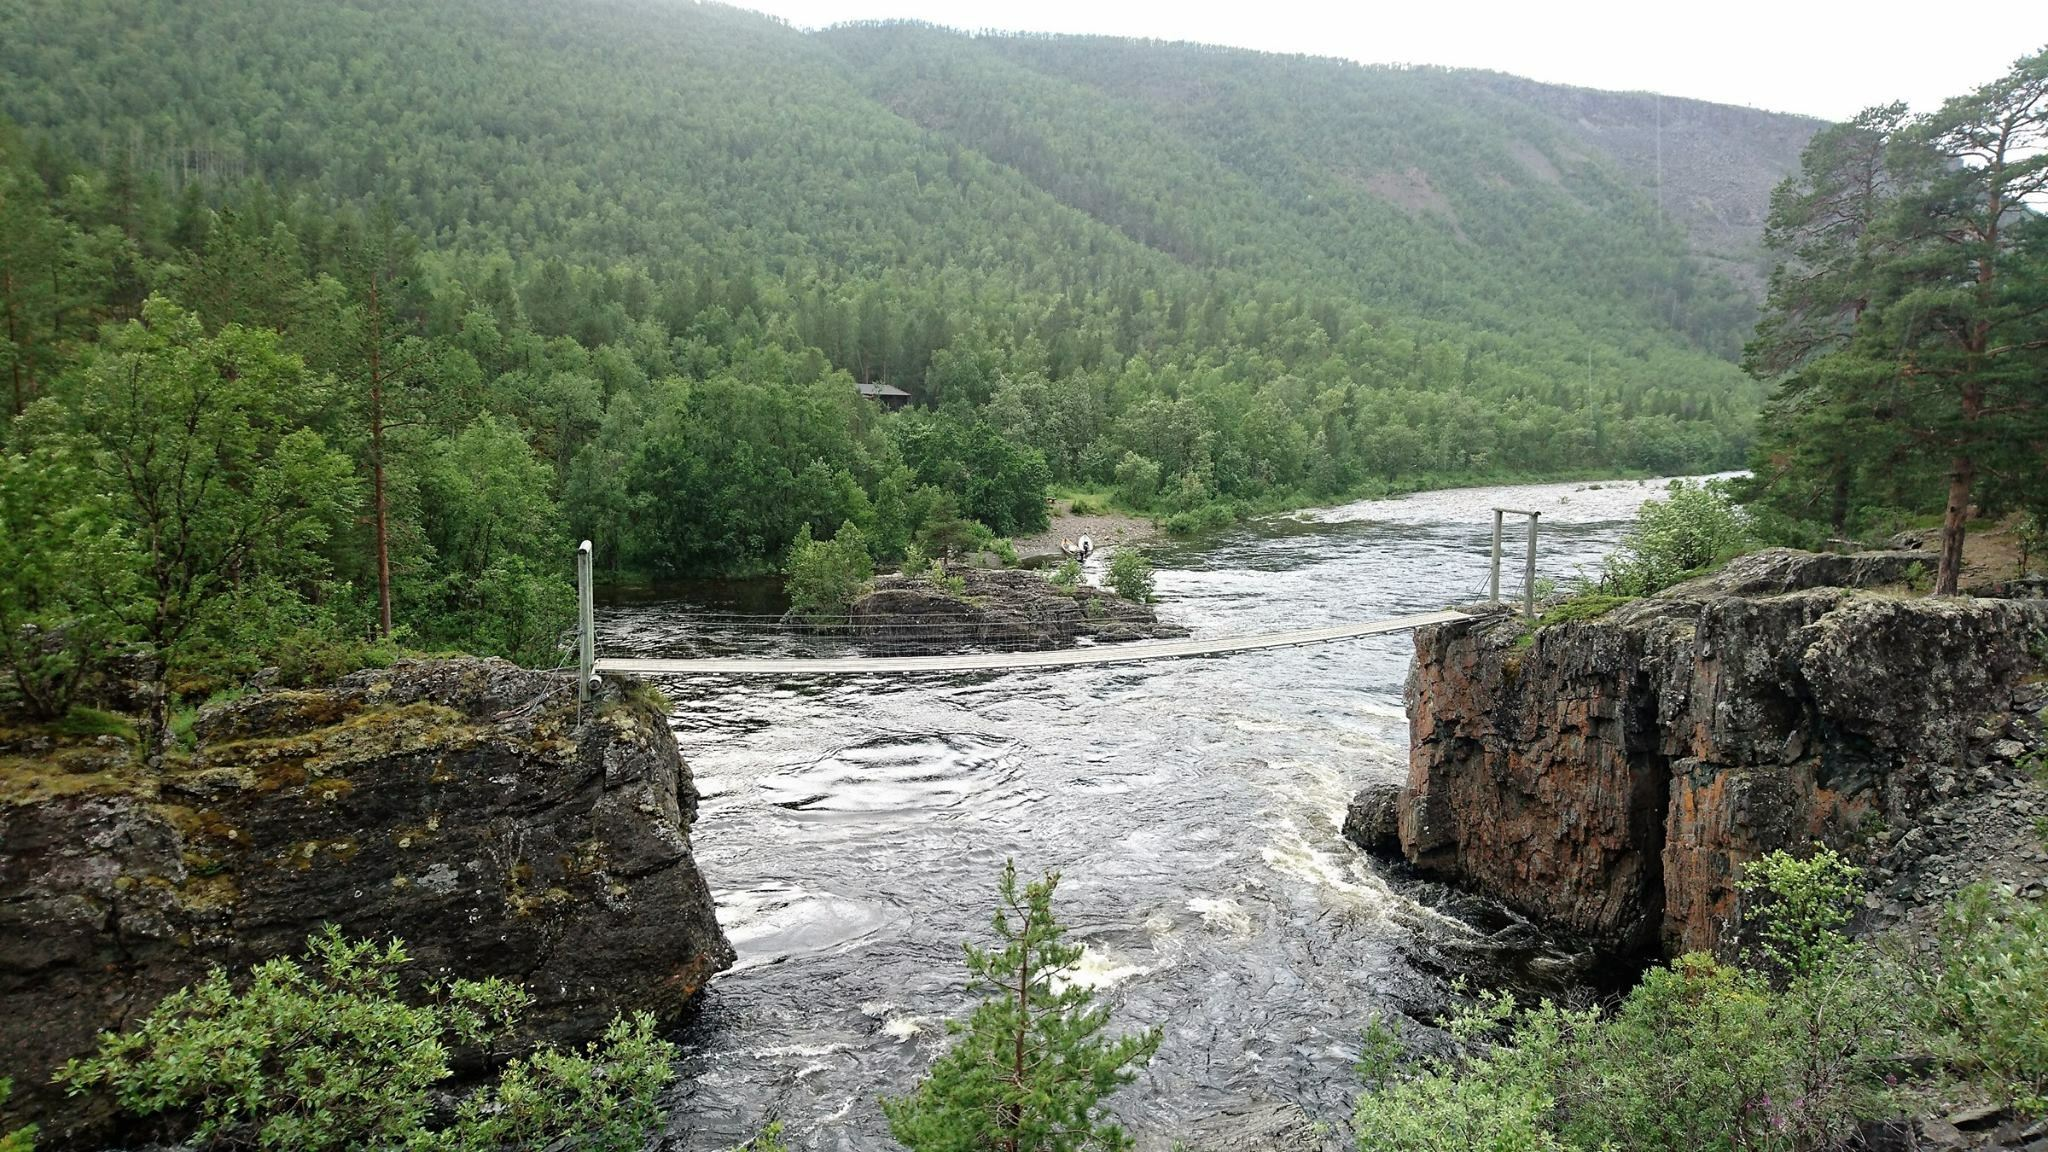 Guided tour to Imofossen waterfall